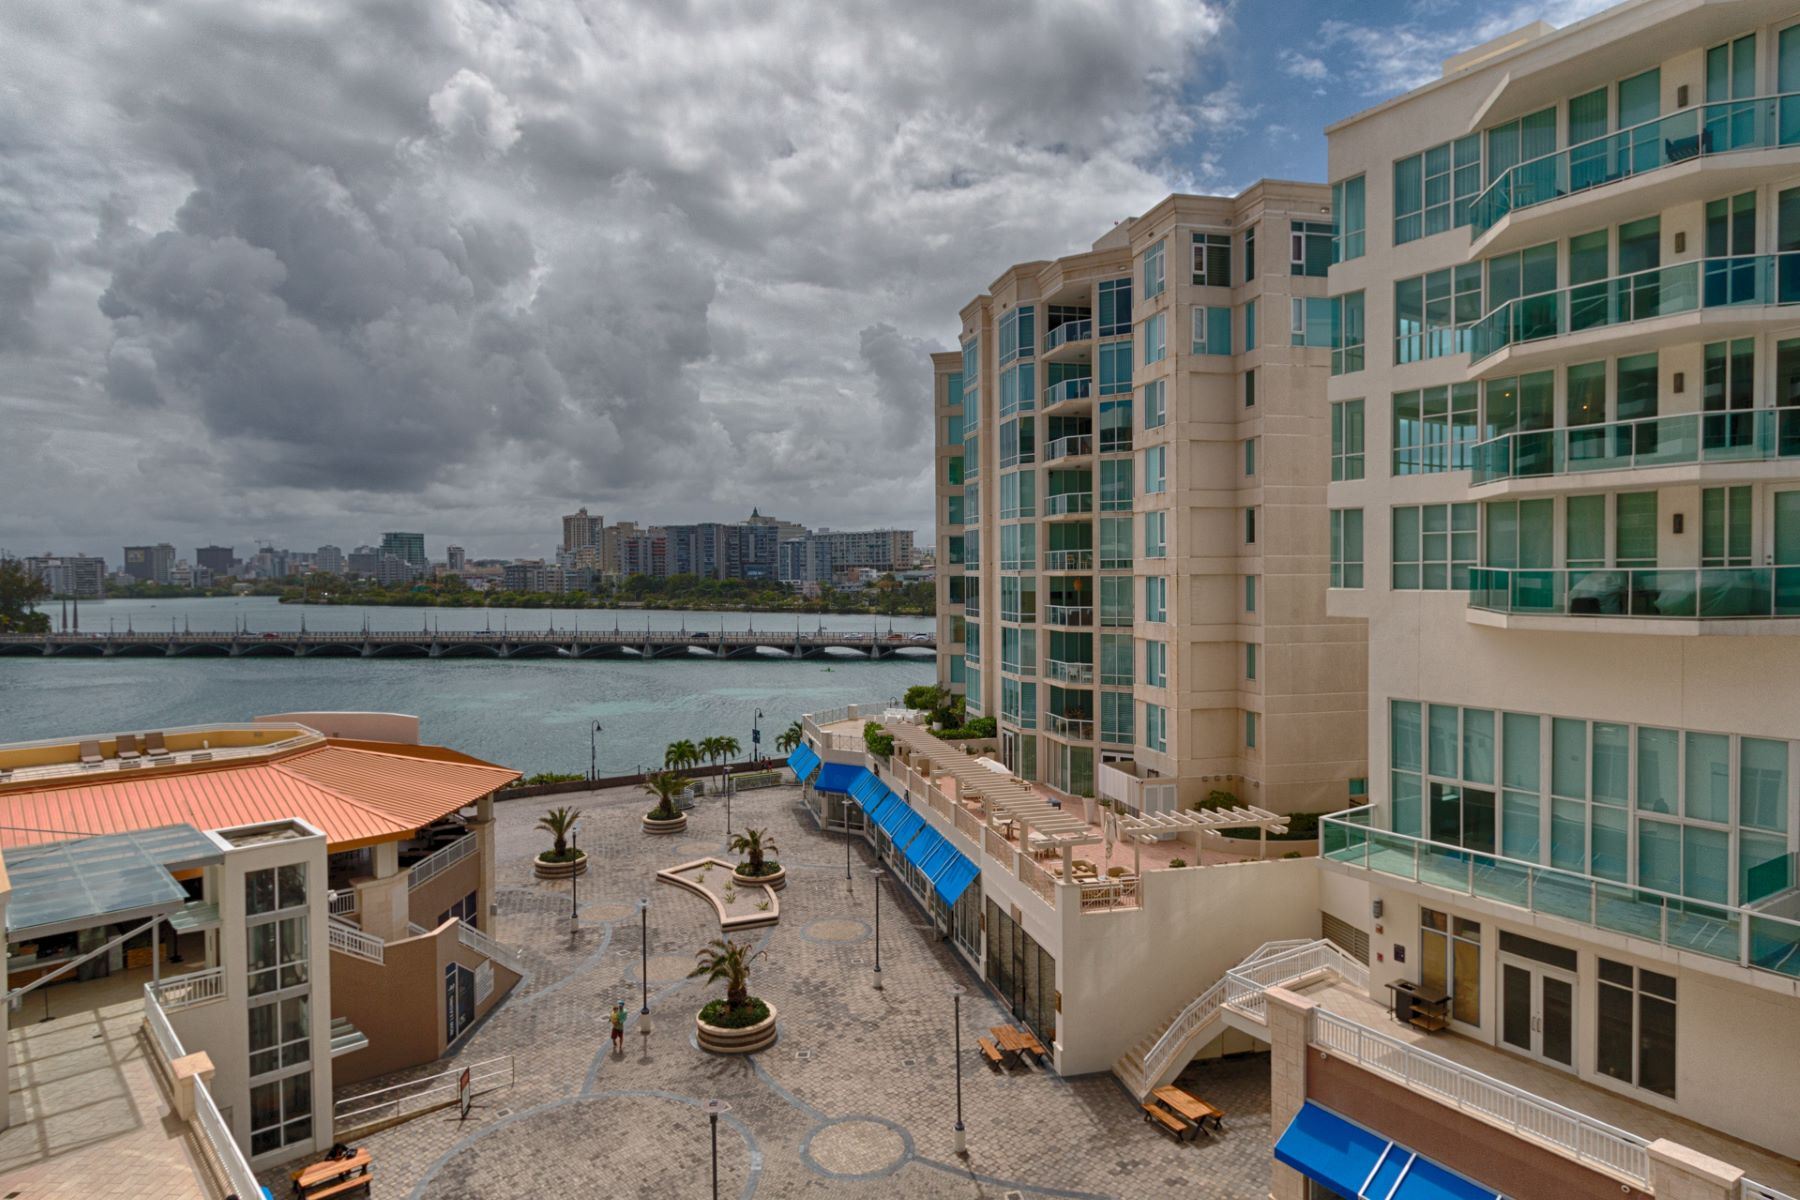 Additional photo for property listing at Elegant 6th Floor Rental with Private Pool 25 Munoz Rivera Avenue apt 601 San Juan, Puerto Rico 00901 プエルトリコ